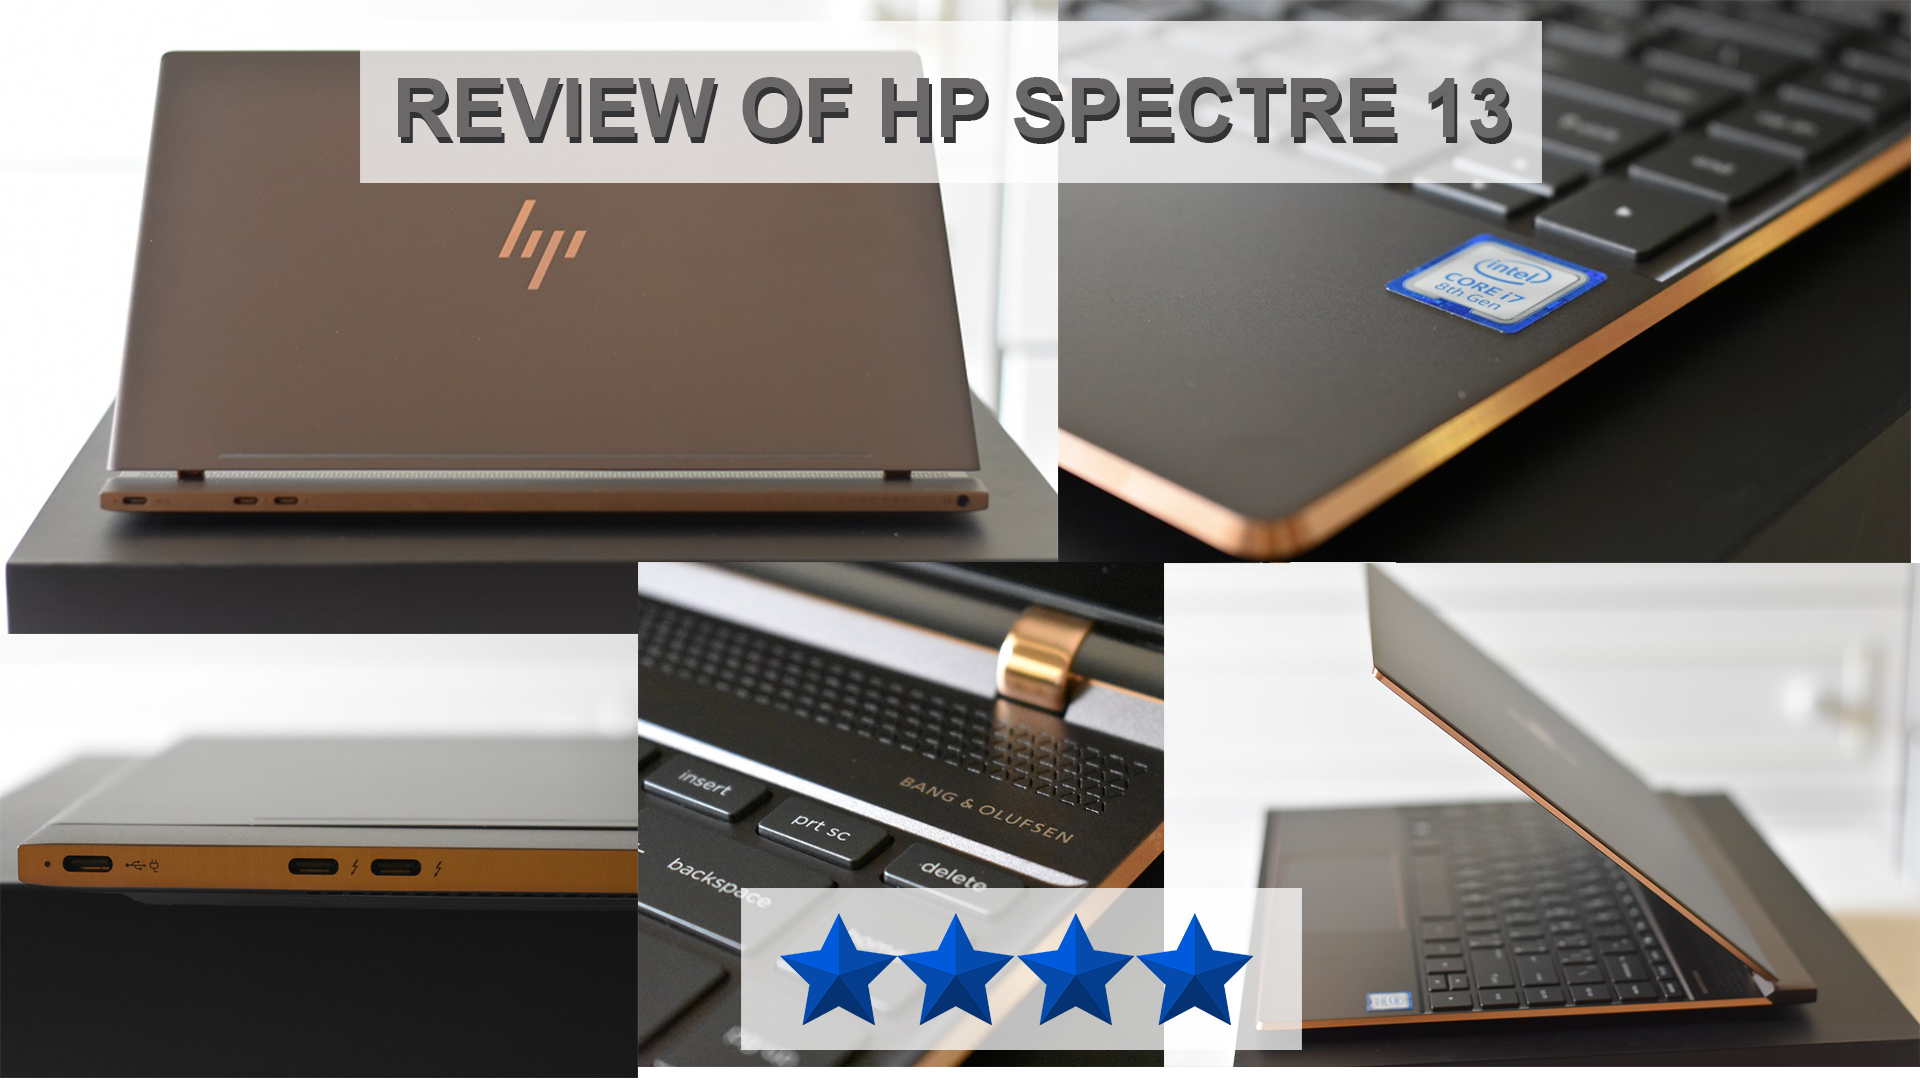 Review of HP Spectre 13 (Intel 8th Gen, 8 GB RAM with 512GB SSD)